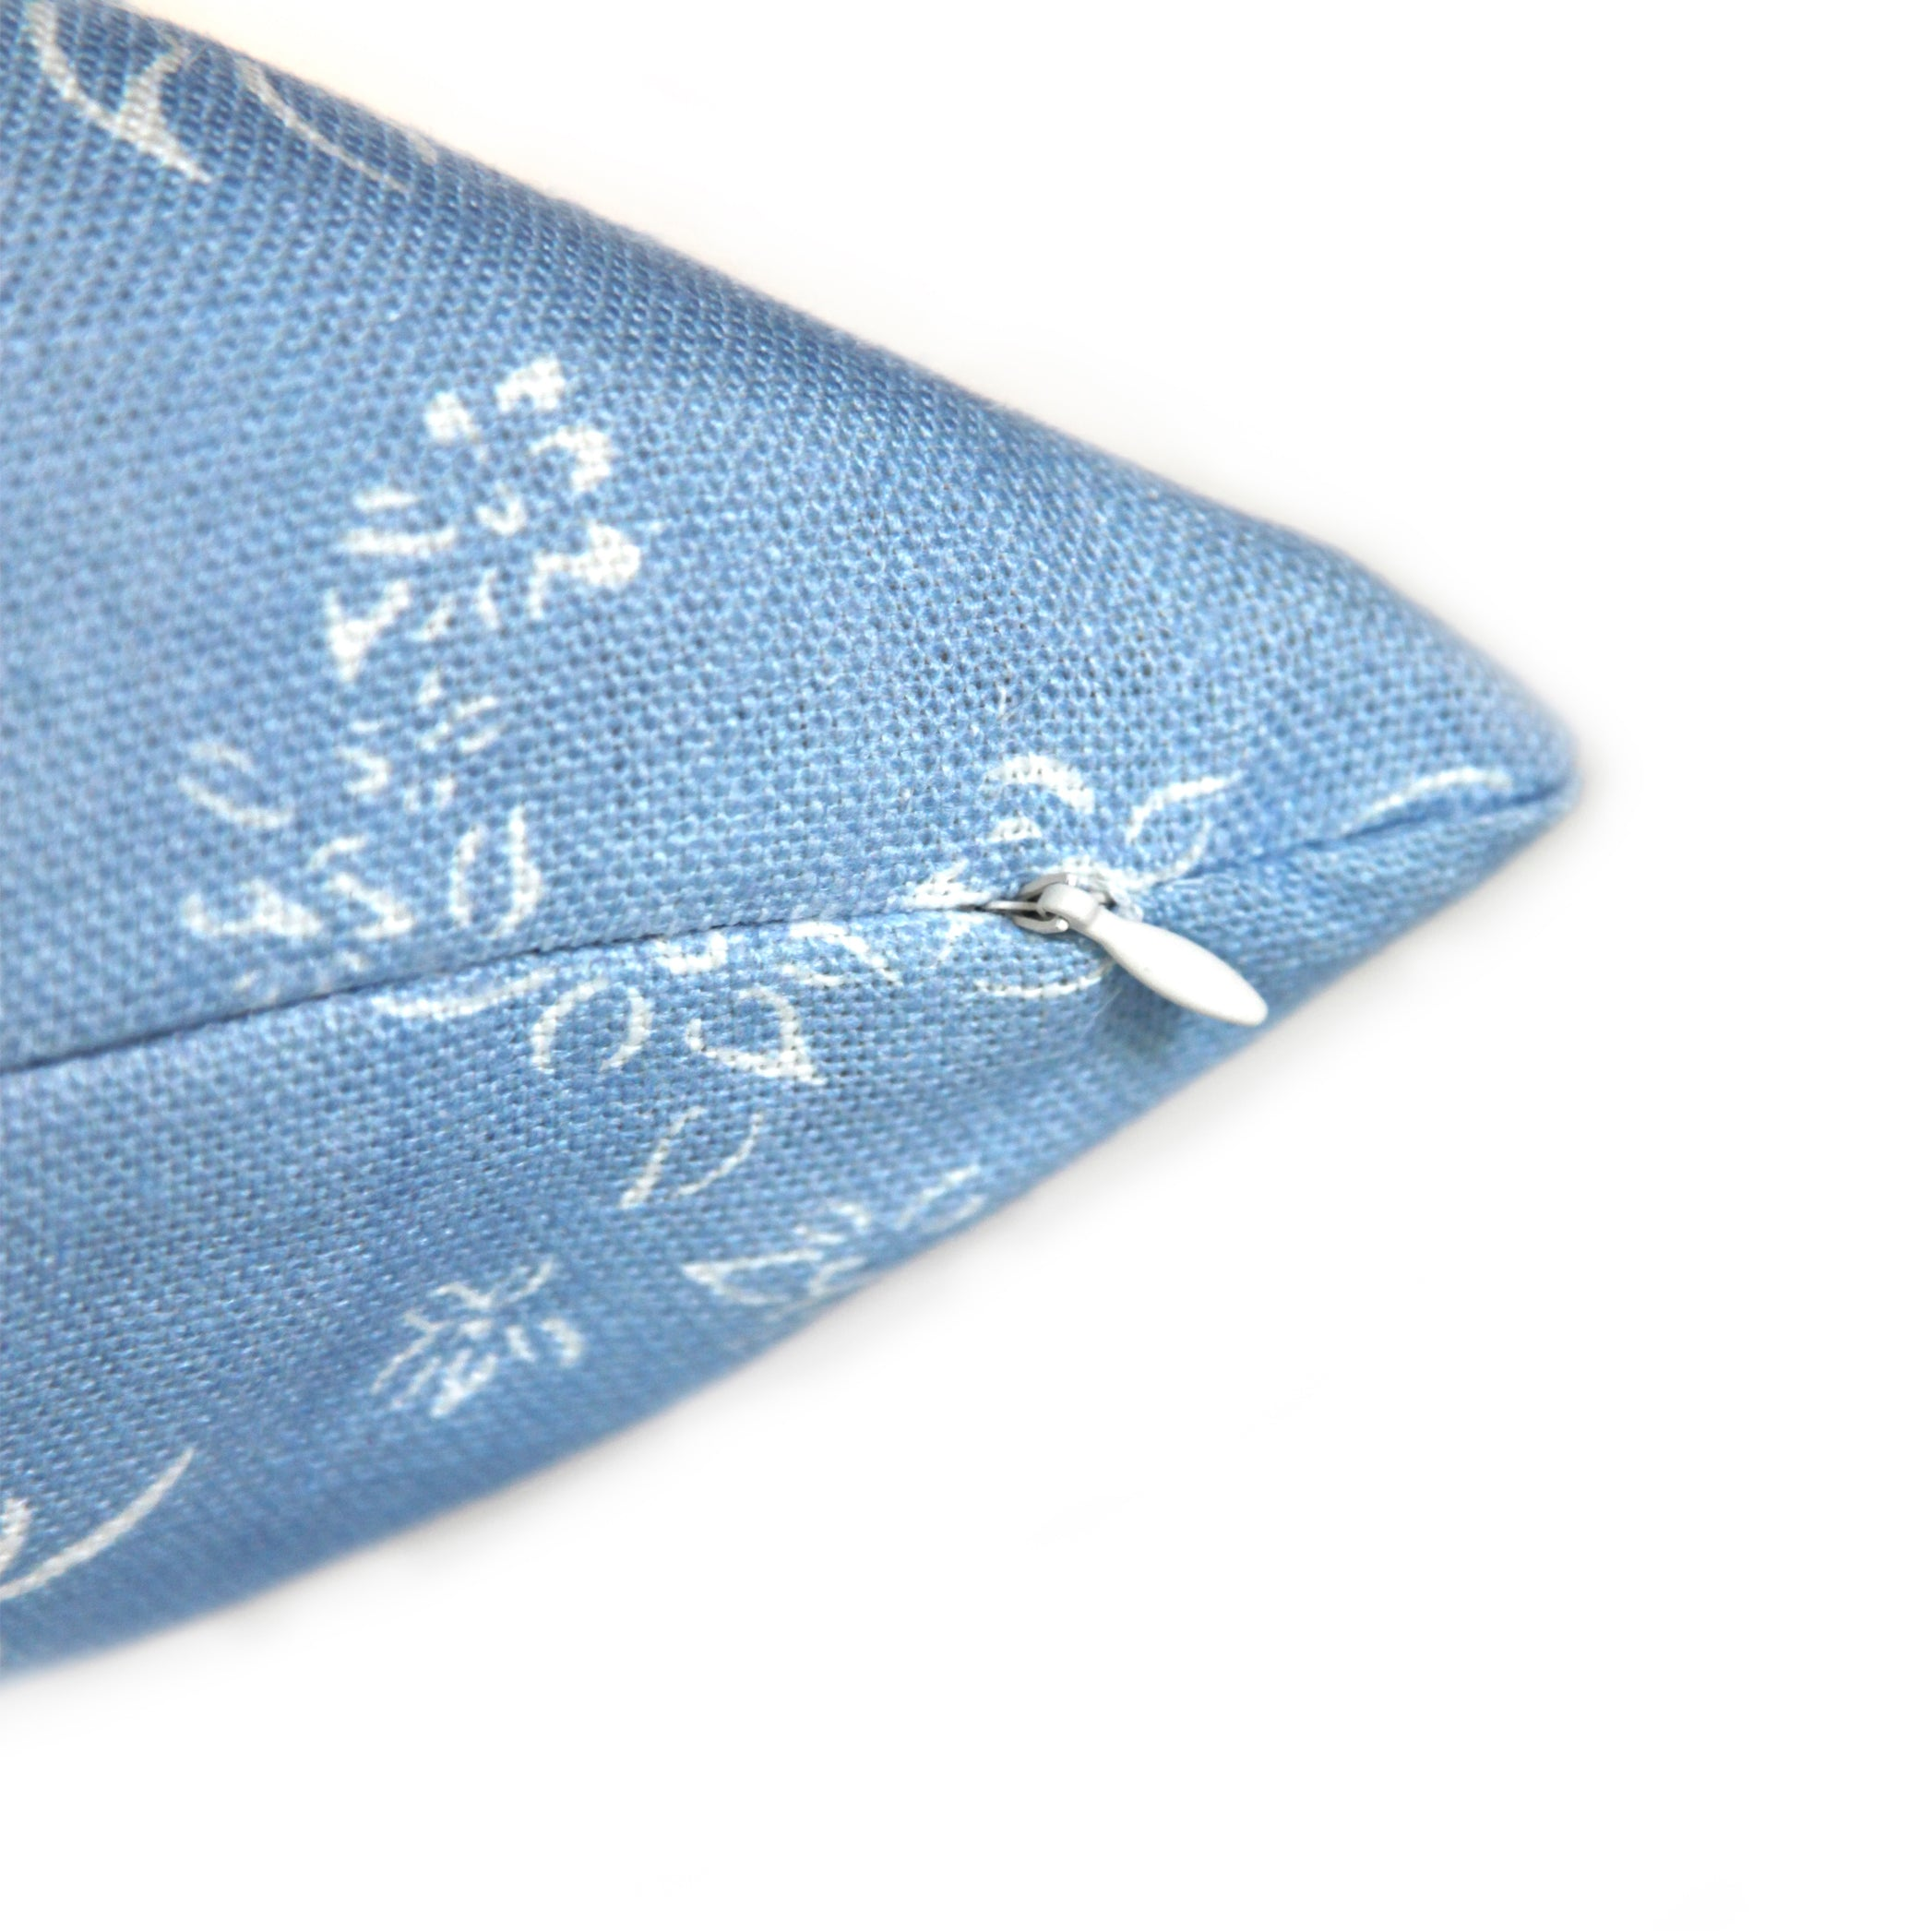 Heavy Linen Falling Flower Cushion in Full Field Pale Blue, 50cm x 50cm